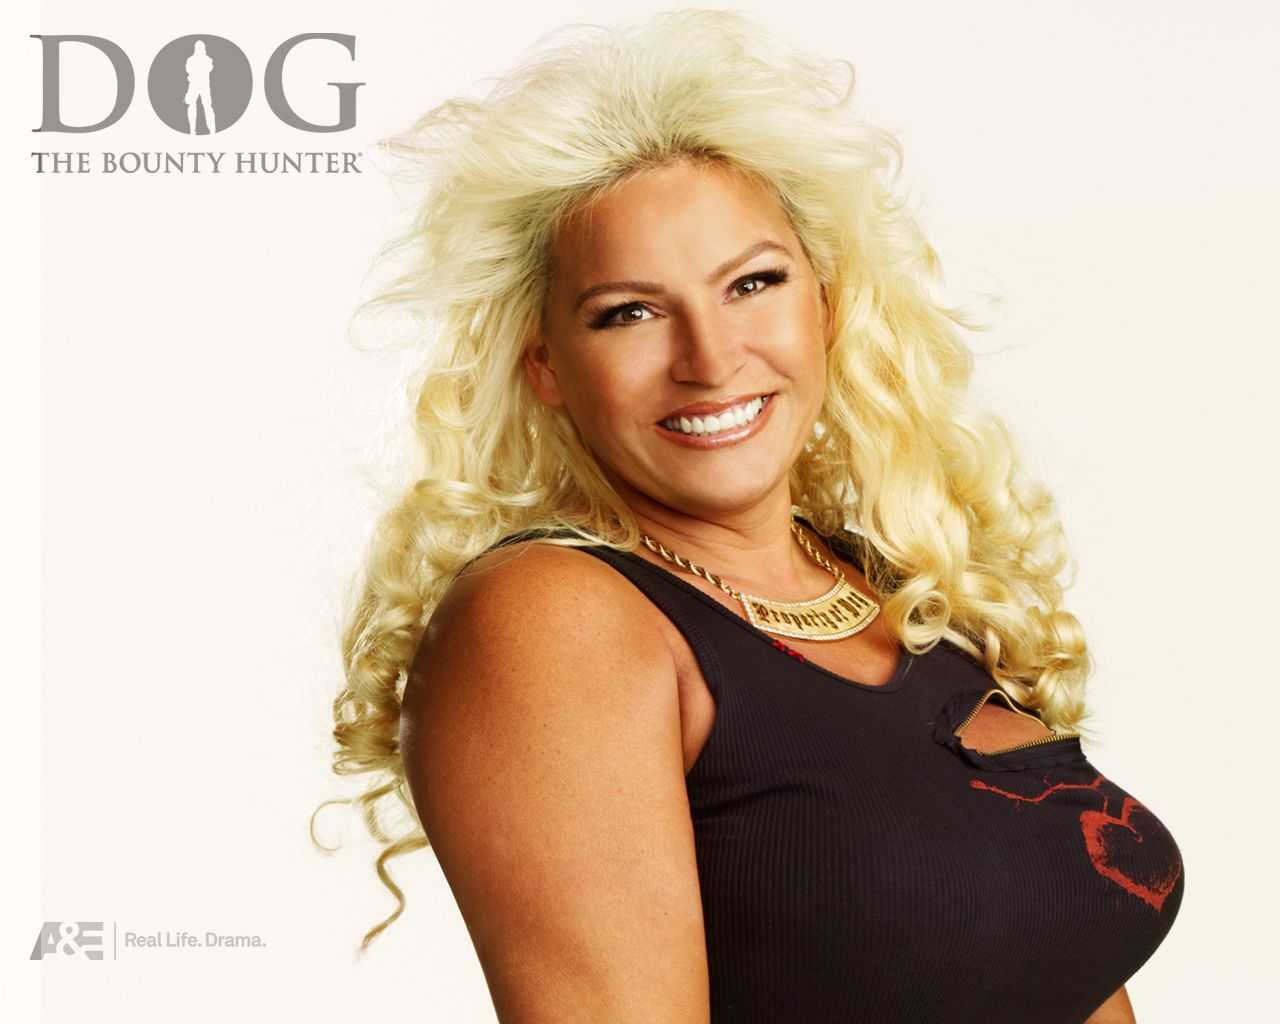 Beth Dog The Bounty Hunter Beth The Bounty Hunter Hunter Dog